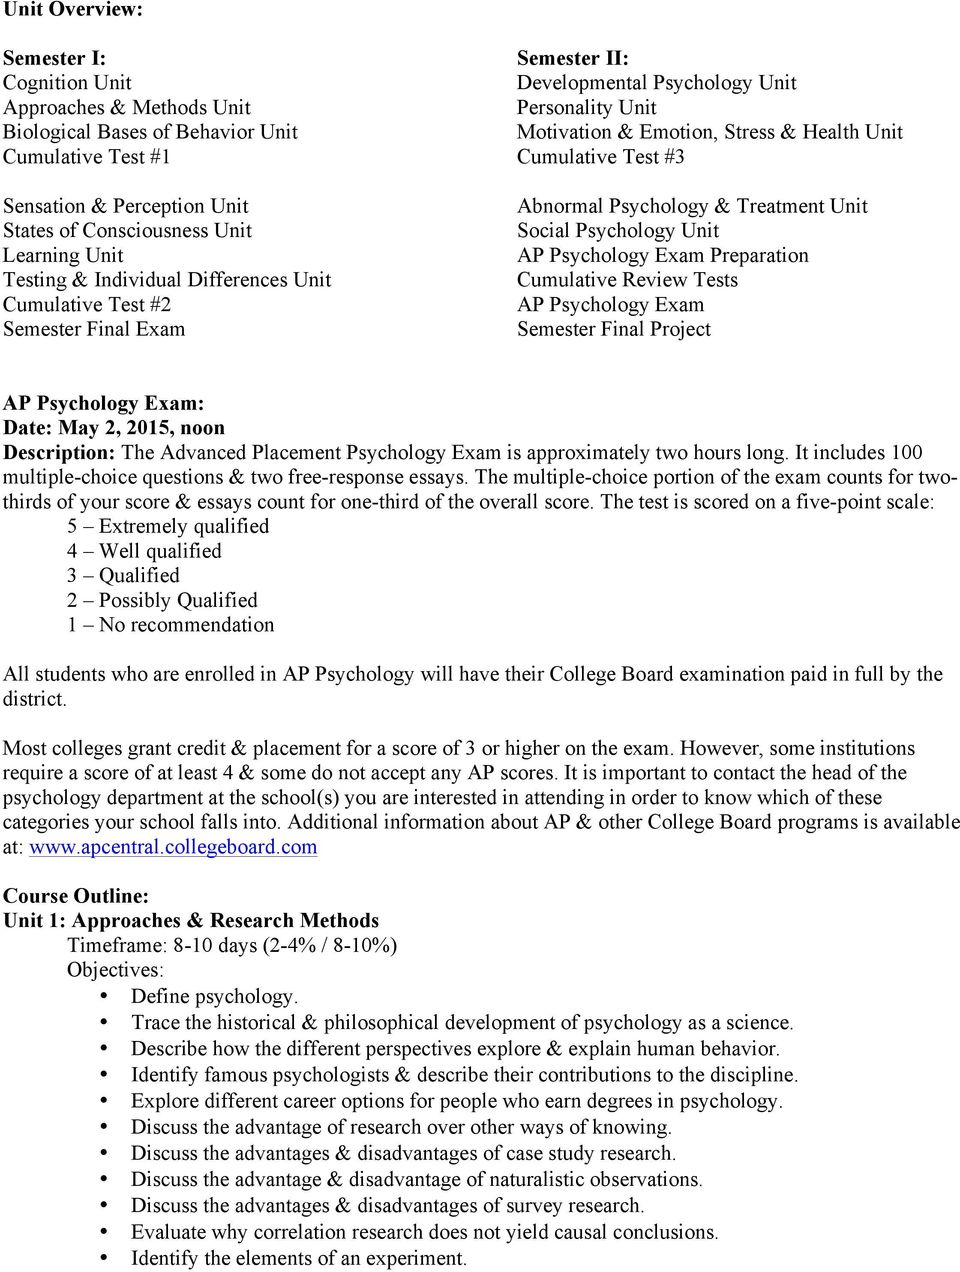 Psychology & Treatment Unit Social Psychology Unit AP Psychology Exam Preparation Cumulative Review Tests AP Psychology Exam Semester Final Project AP Psychology Exam: Date: May 2, 2015, noon